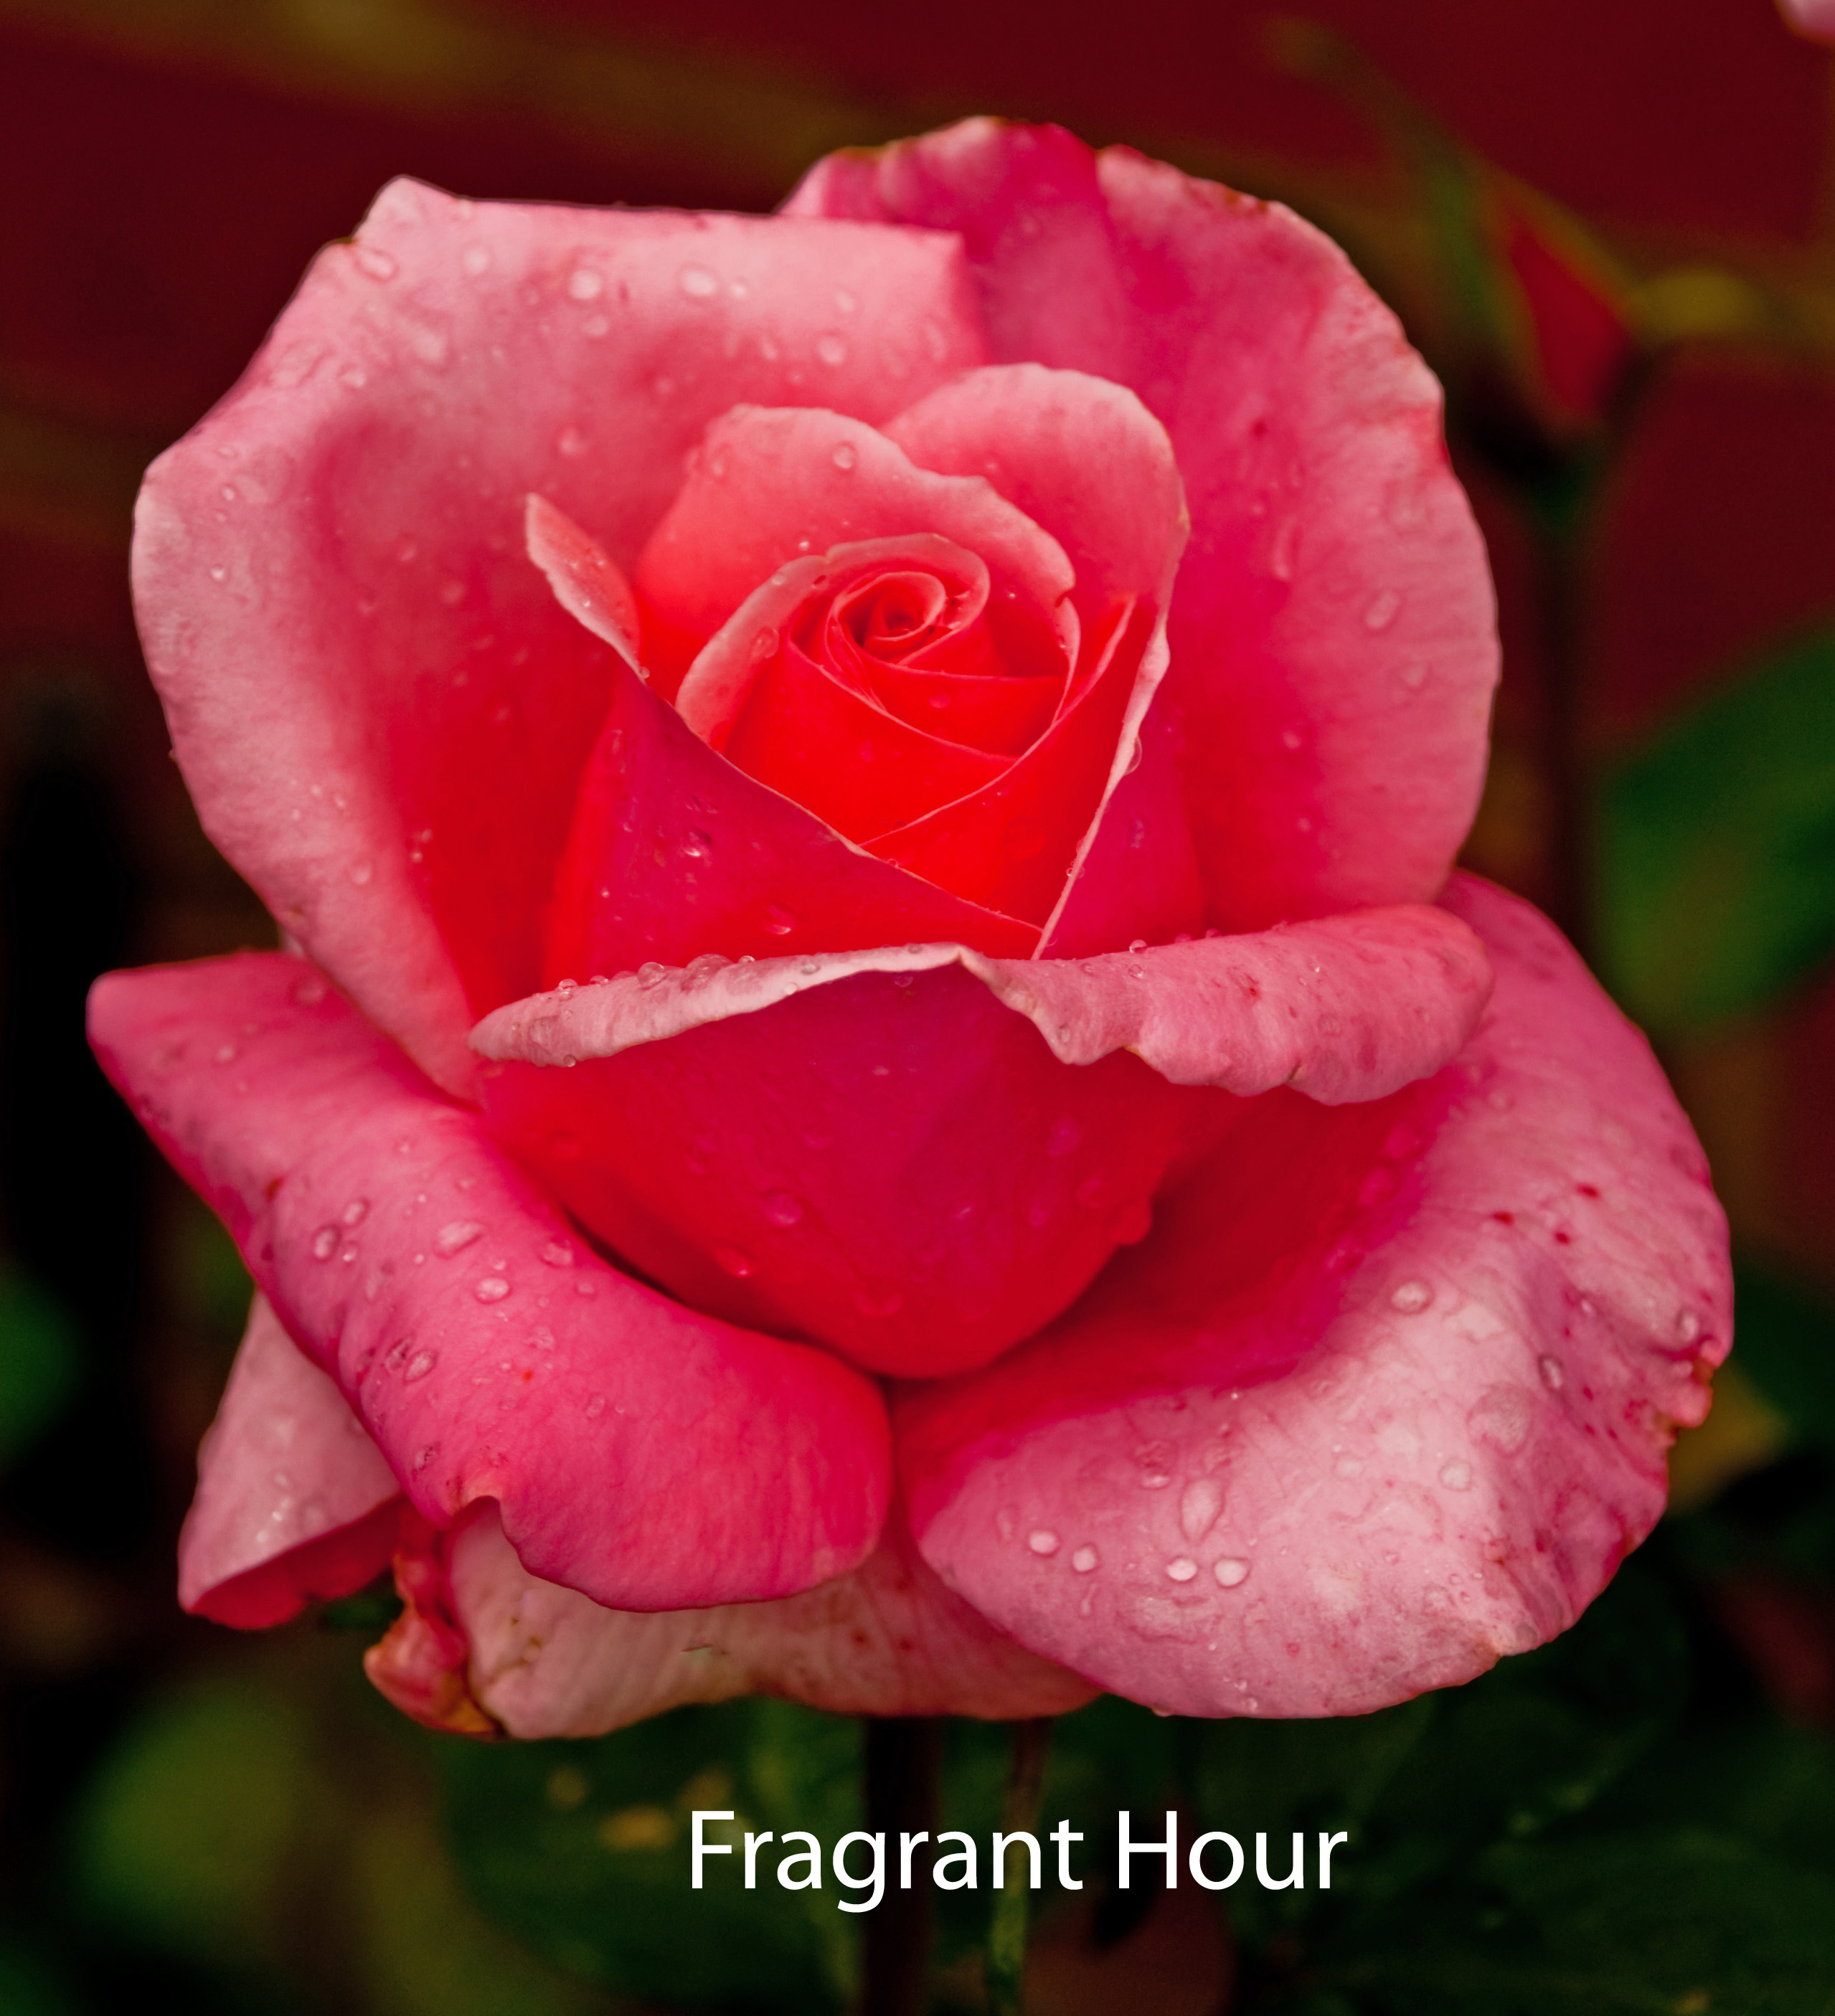 Fragrant Hour